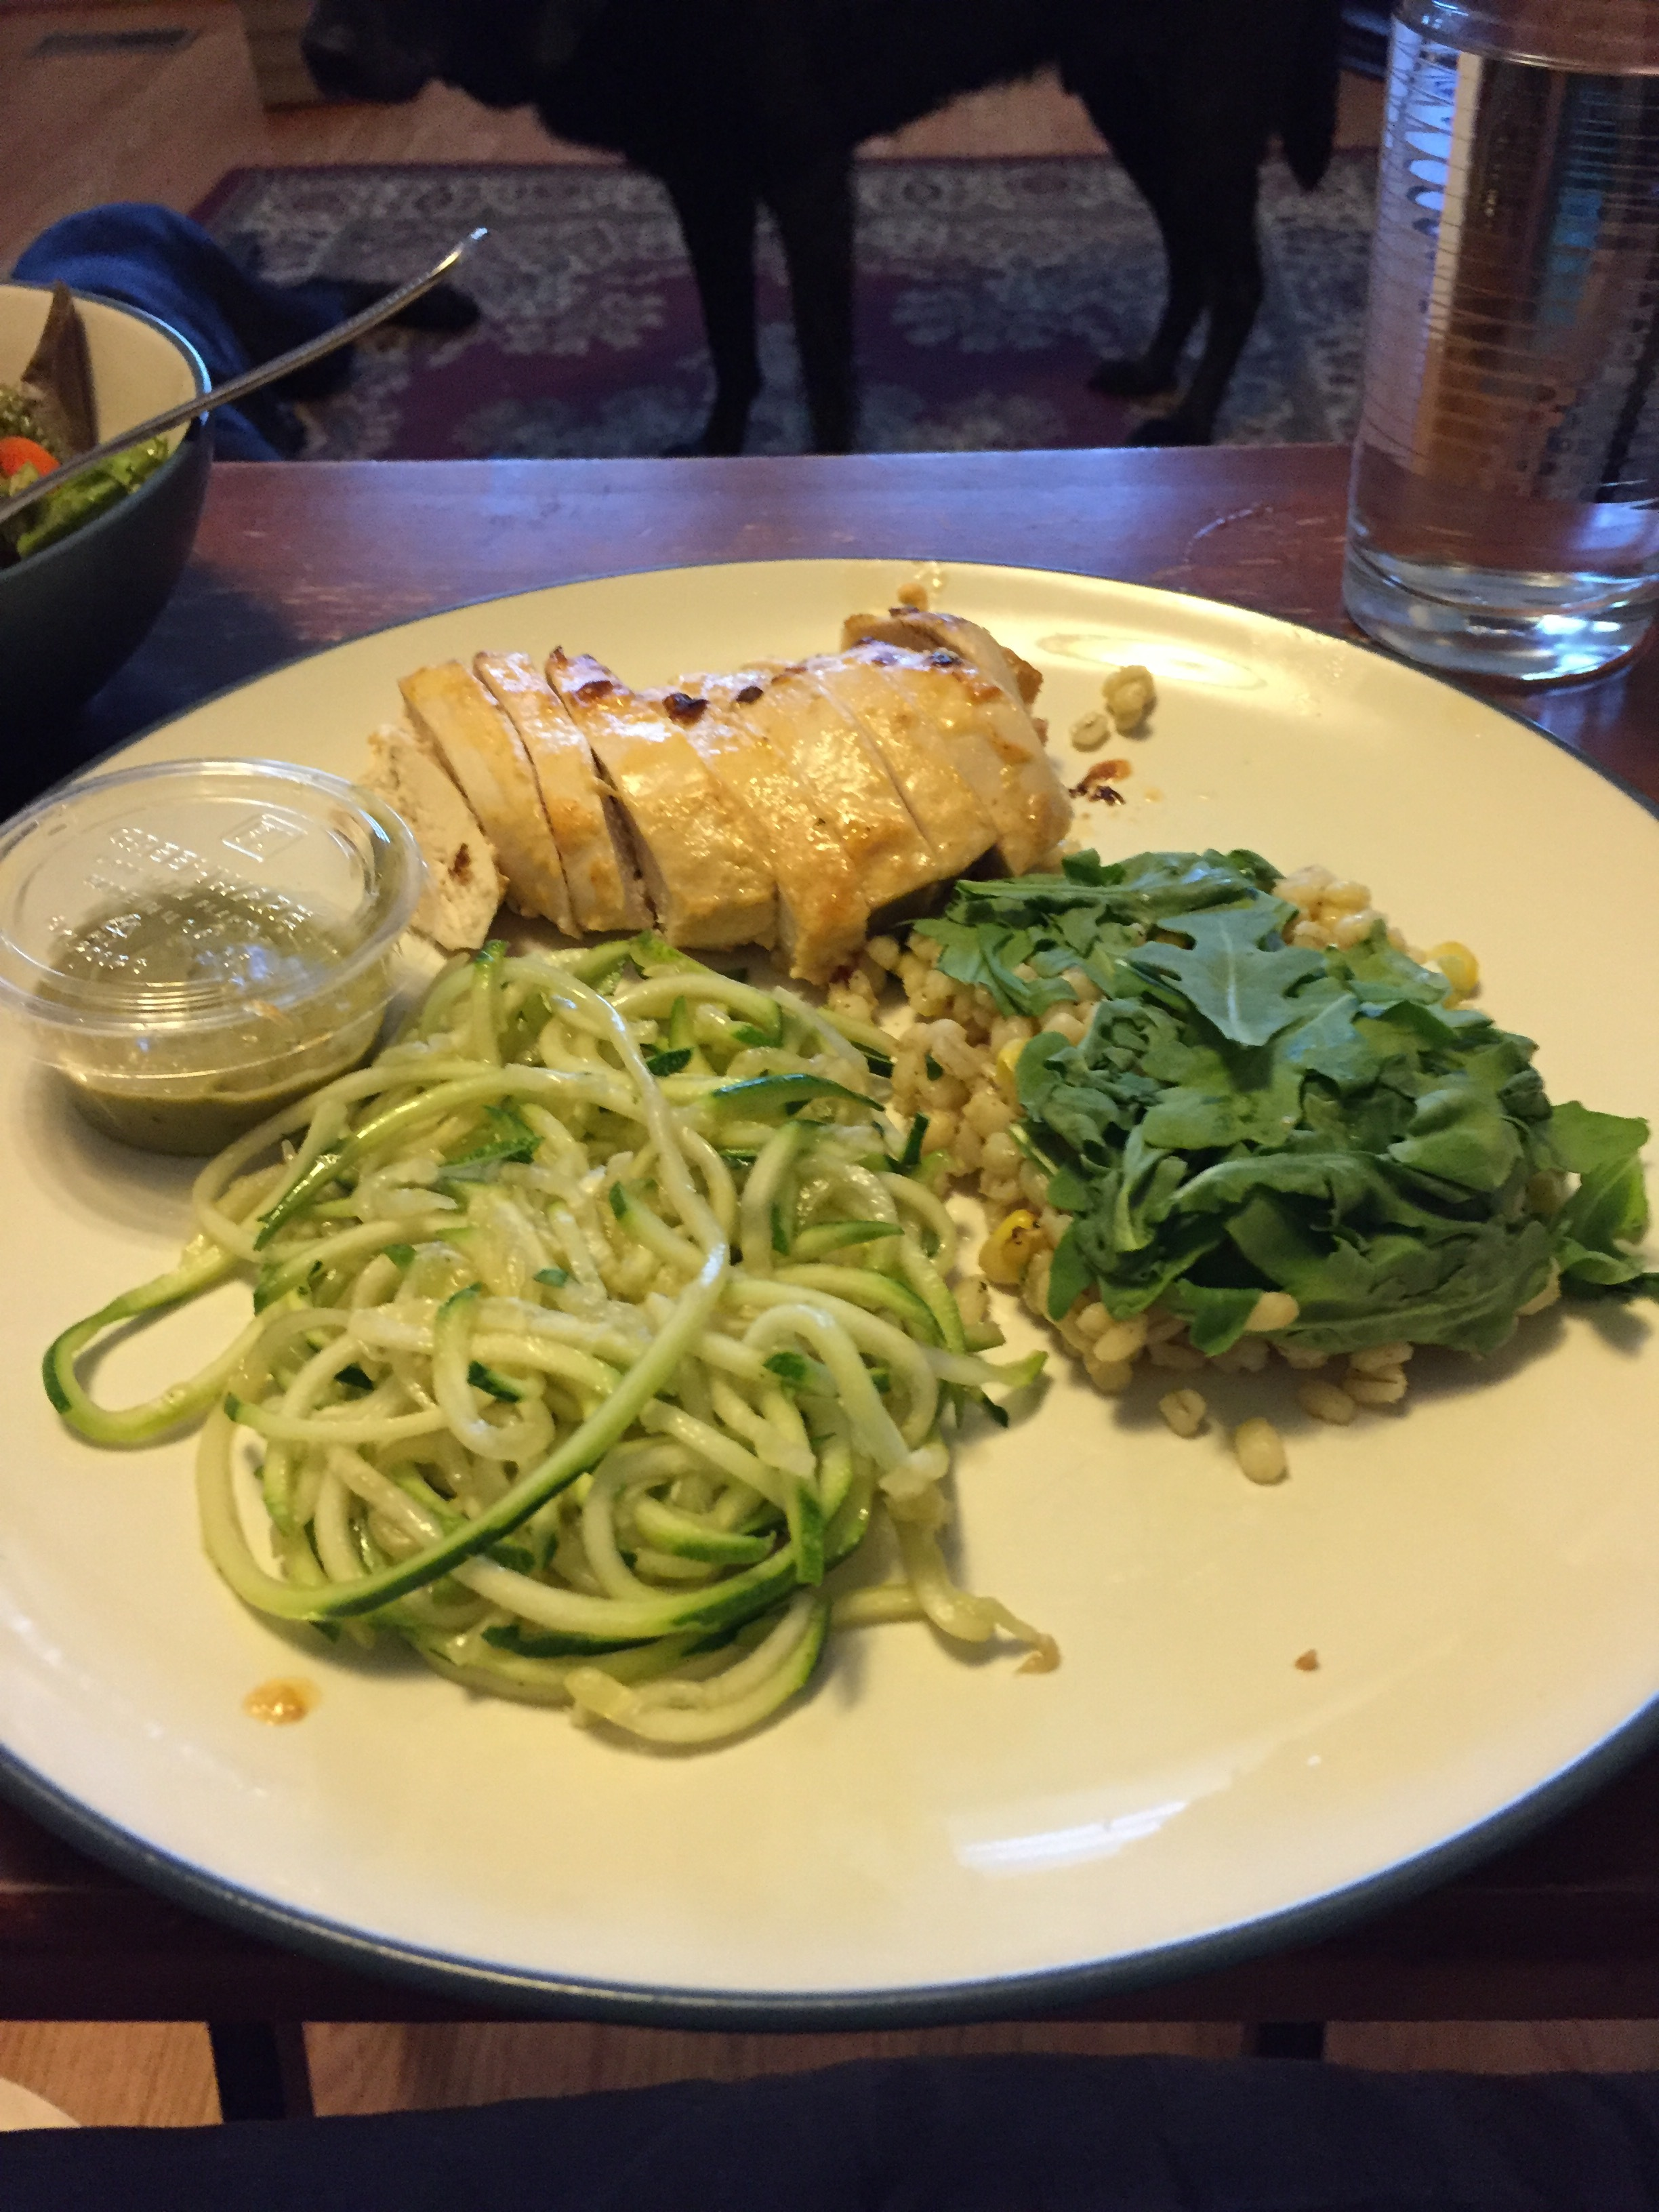 A dinner plate with chicken, barley salad, and zucchini noodles